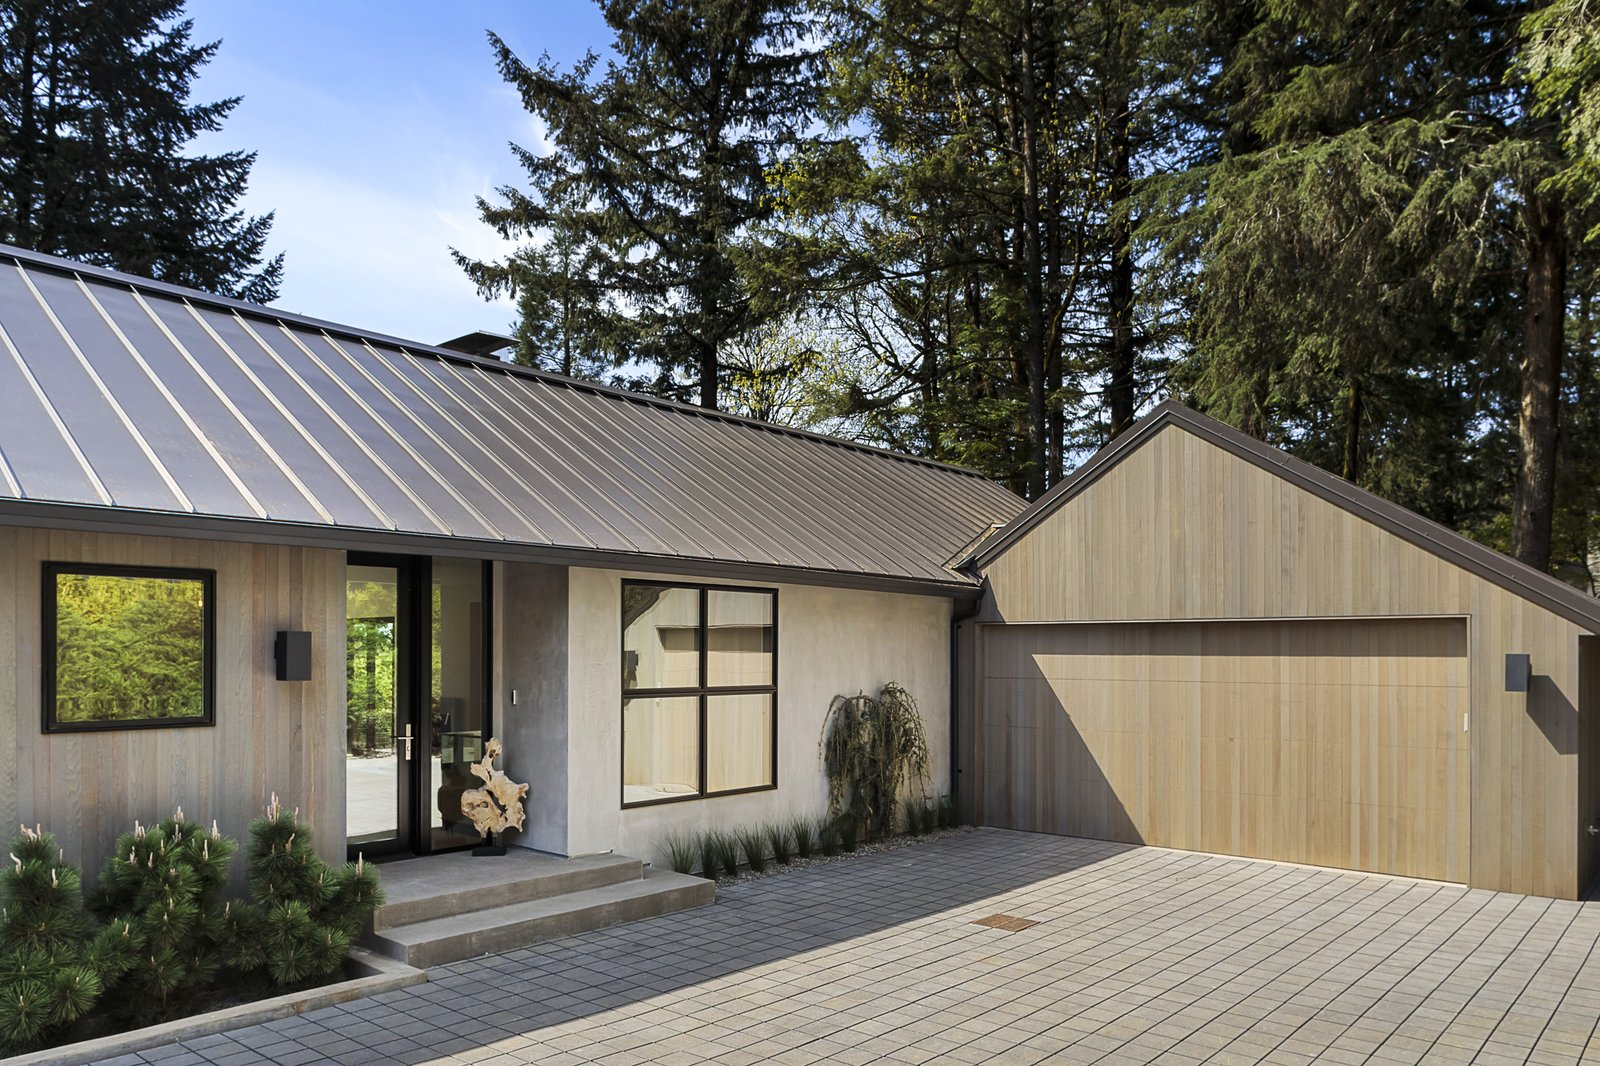 Exterior, Concrete Siding Material, Metal Roof Material, House Building Type, and Wood Siding Material  Burton House